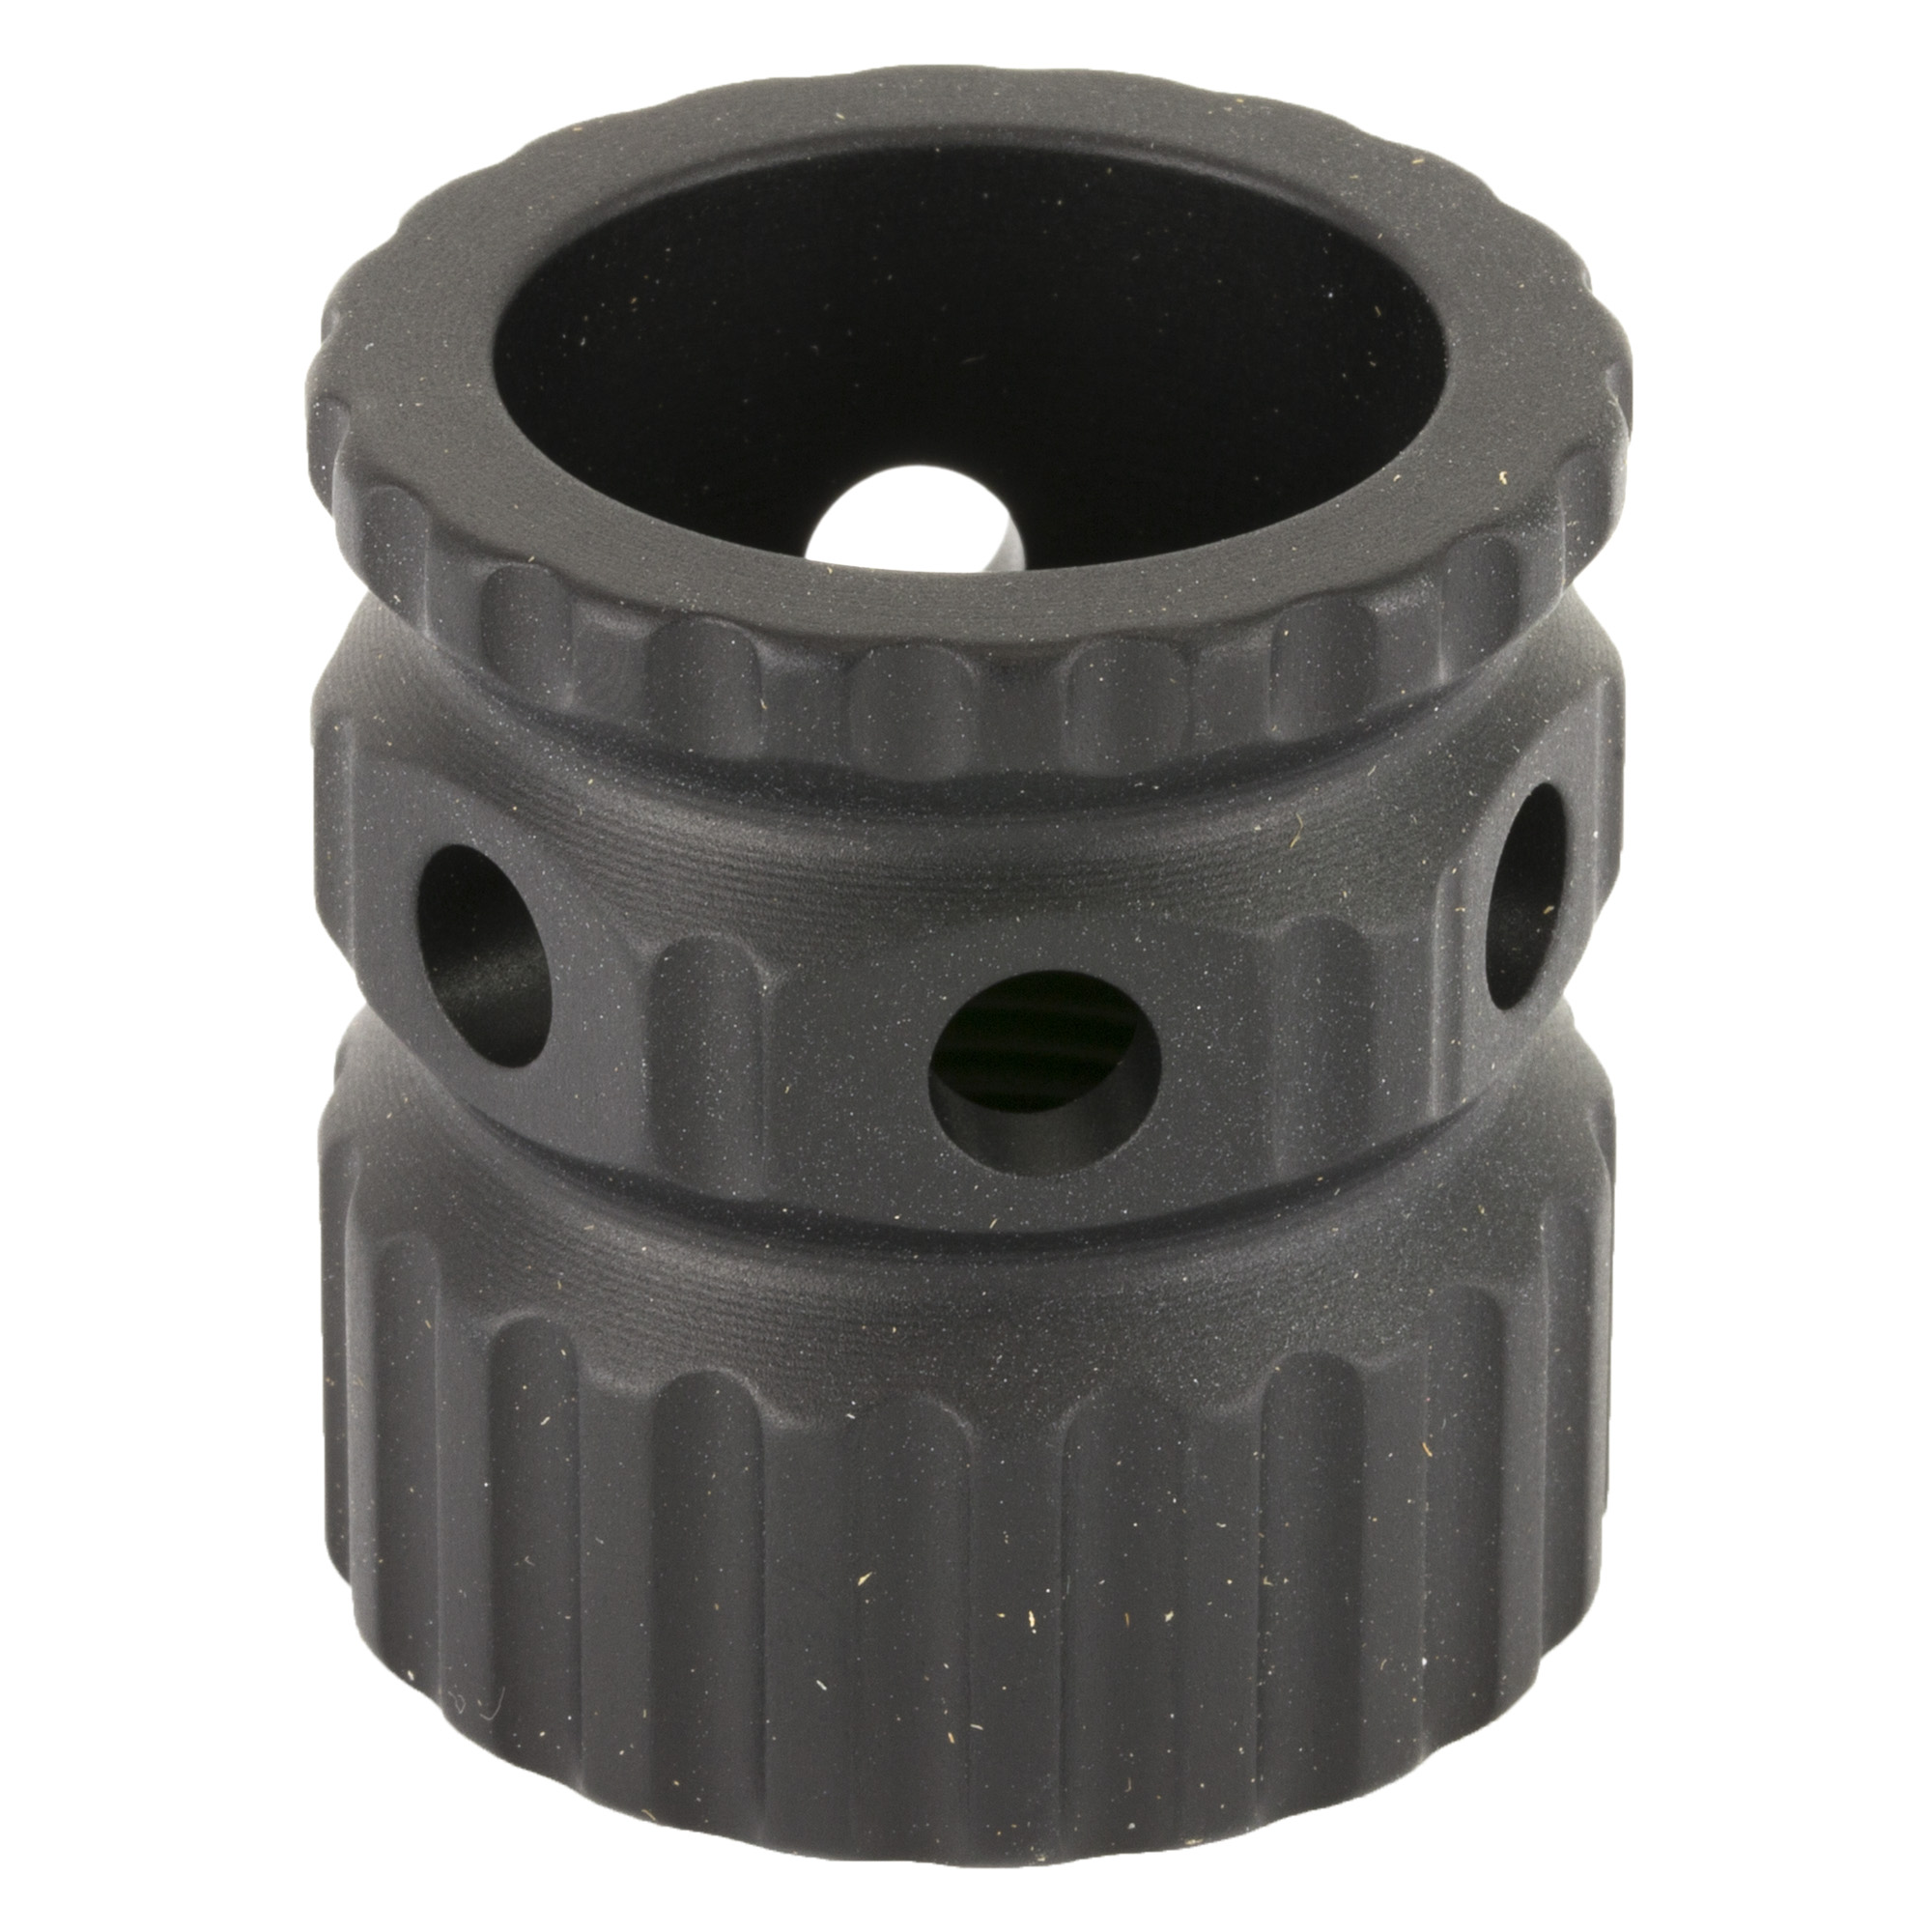 "A simple weight saving component for the 2A Arms AR15 BL rails"" the aluminum BL rail barrel nut is made from 7075-T6 Aluminum and then anodized black. This nut will save an additional .65oz over the titanium barrel nut."